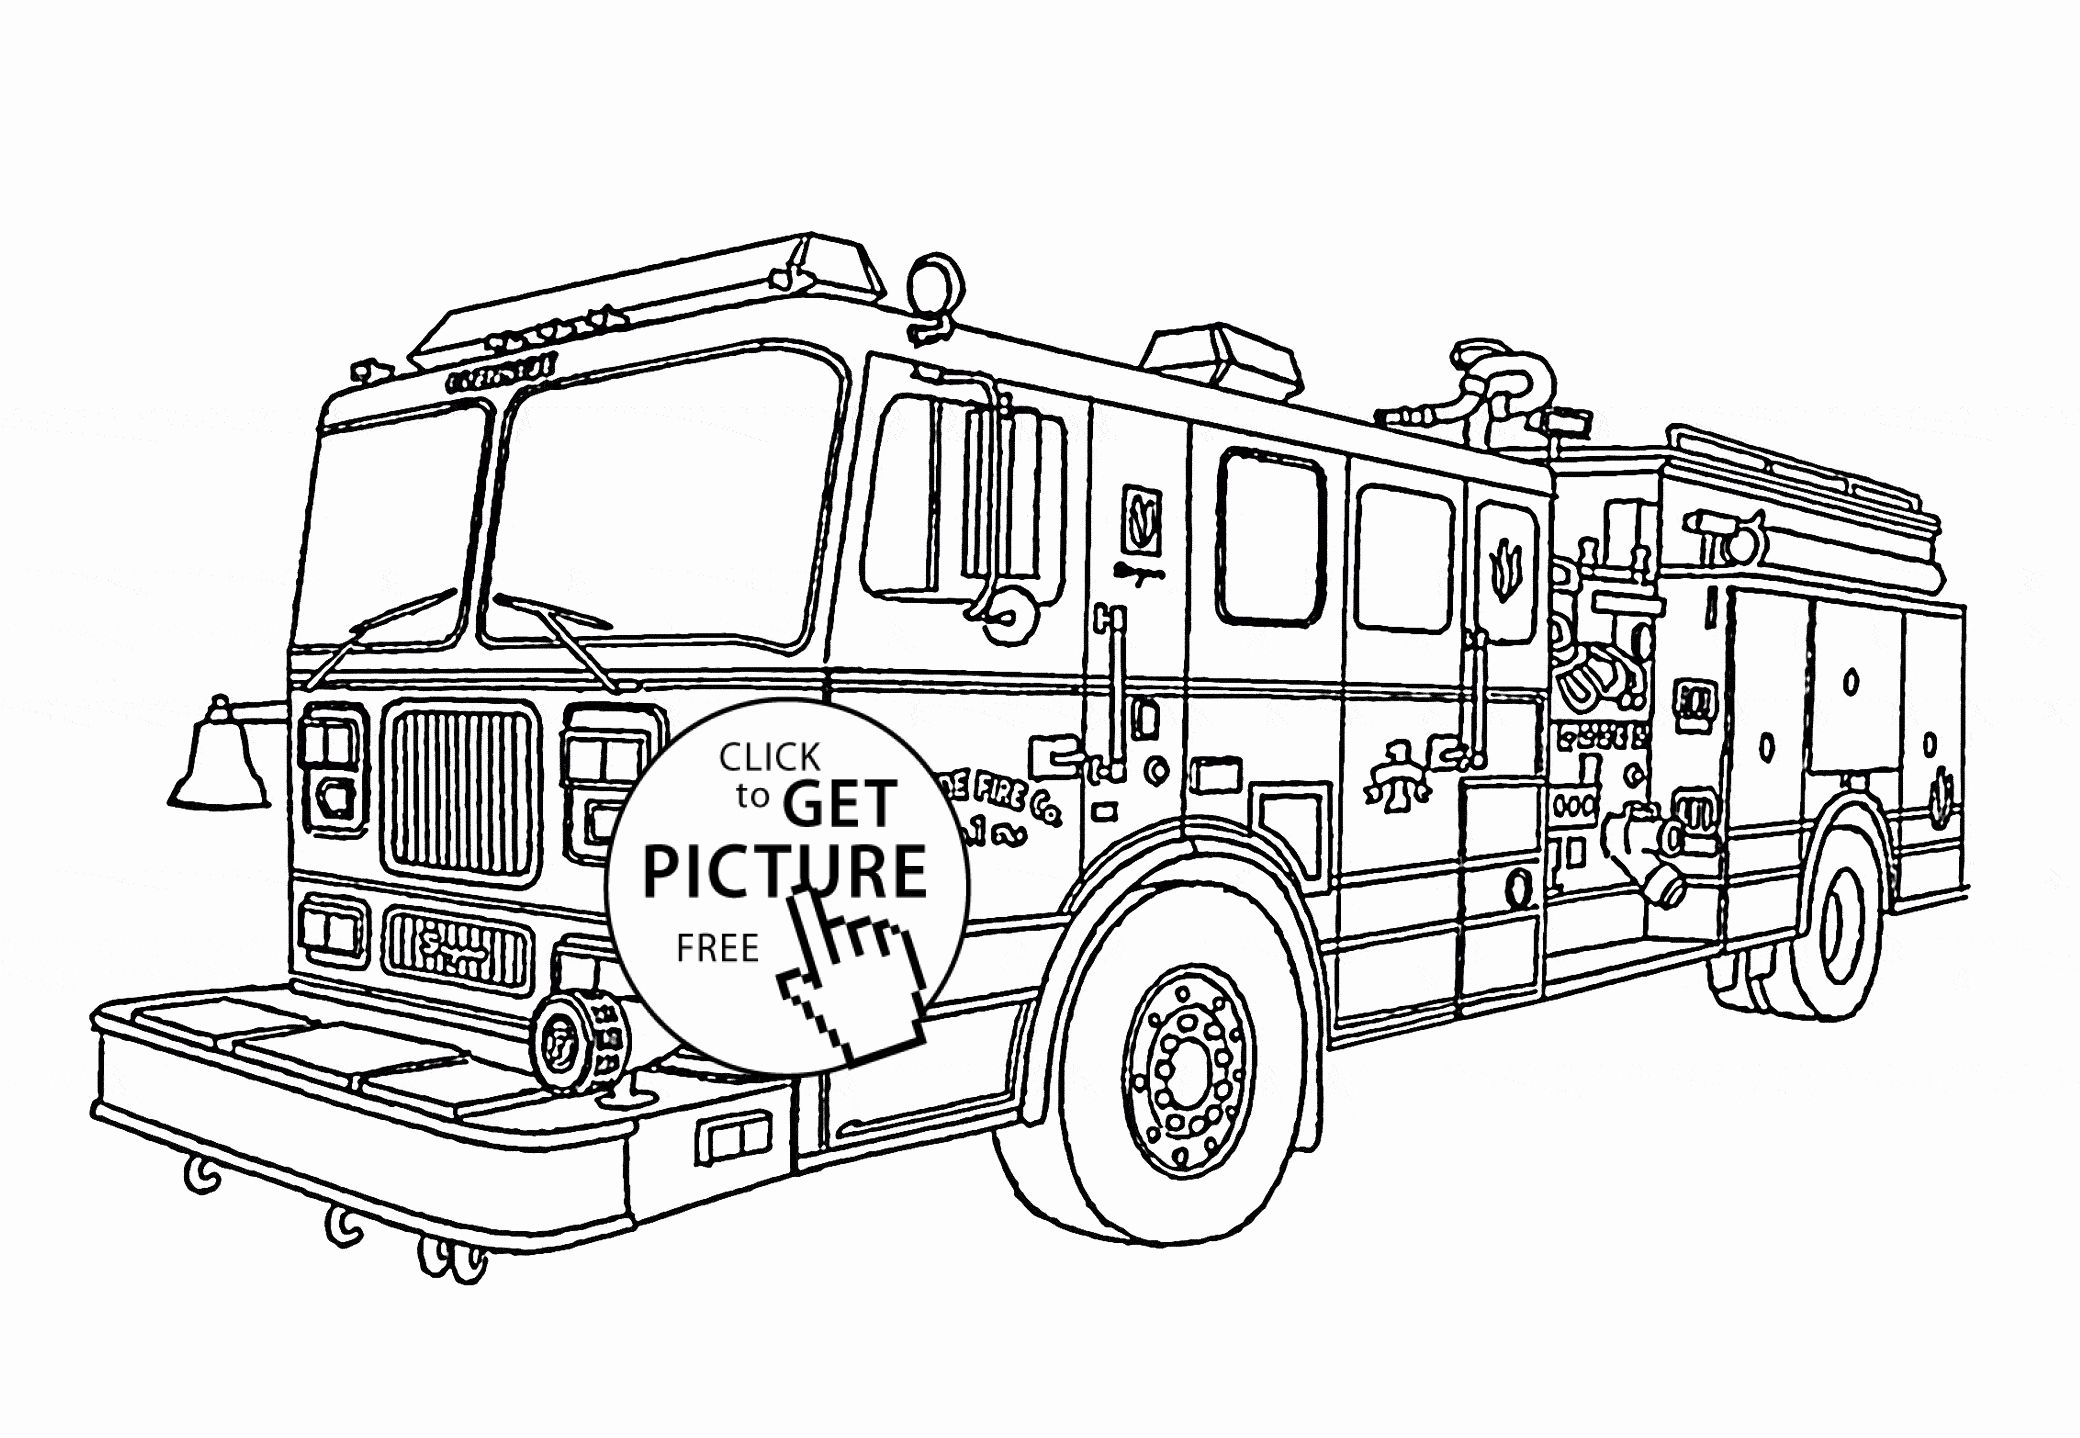 32 Coloring Page Fire Truck In 2020 Coloring Pages Fire Trucks Transportation For Kids